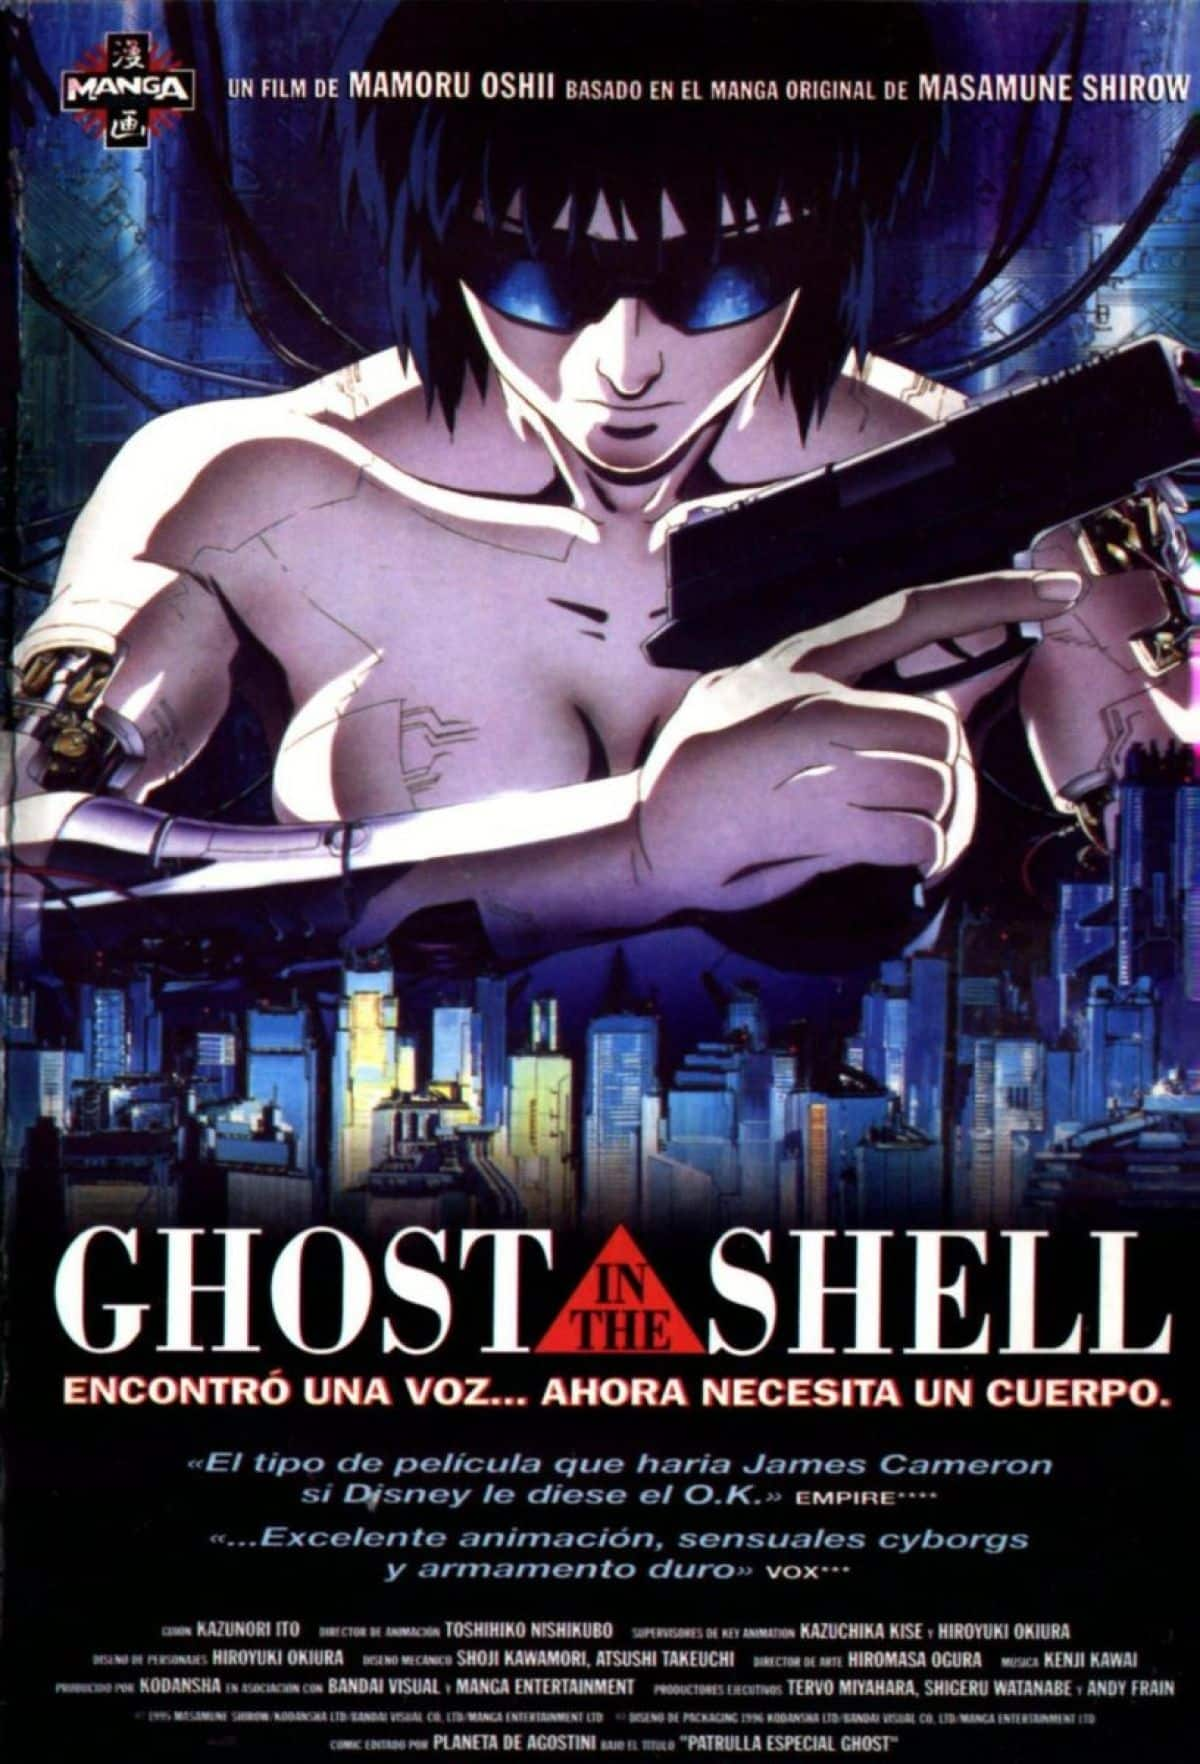 póster anime ghost in the shell